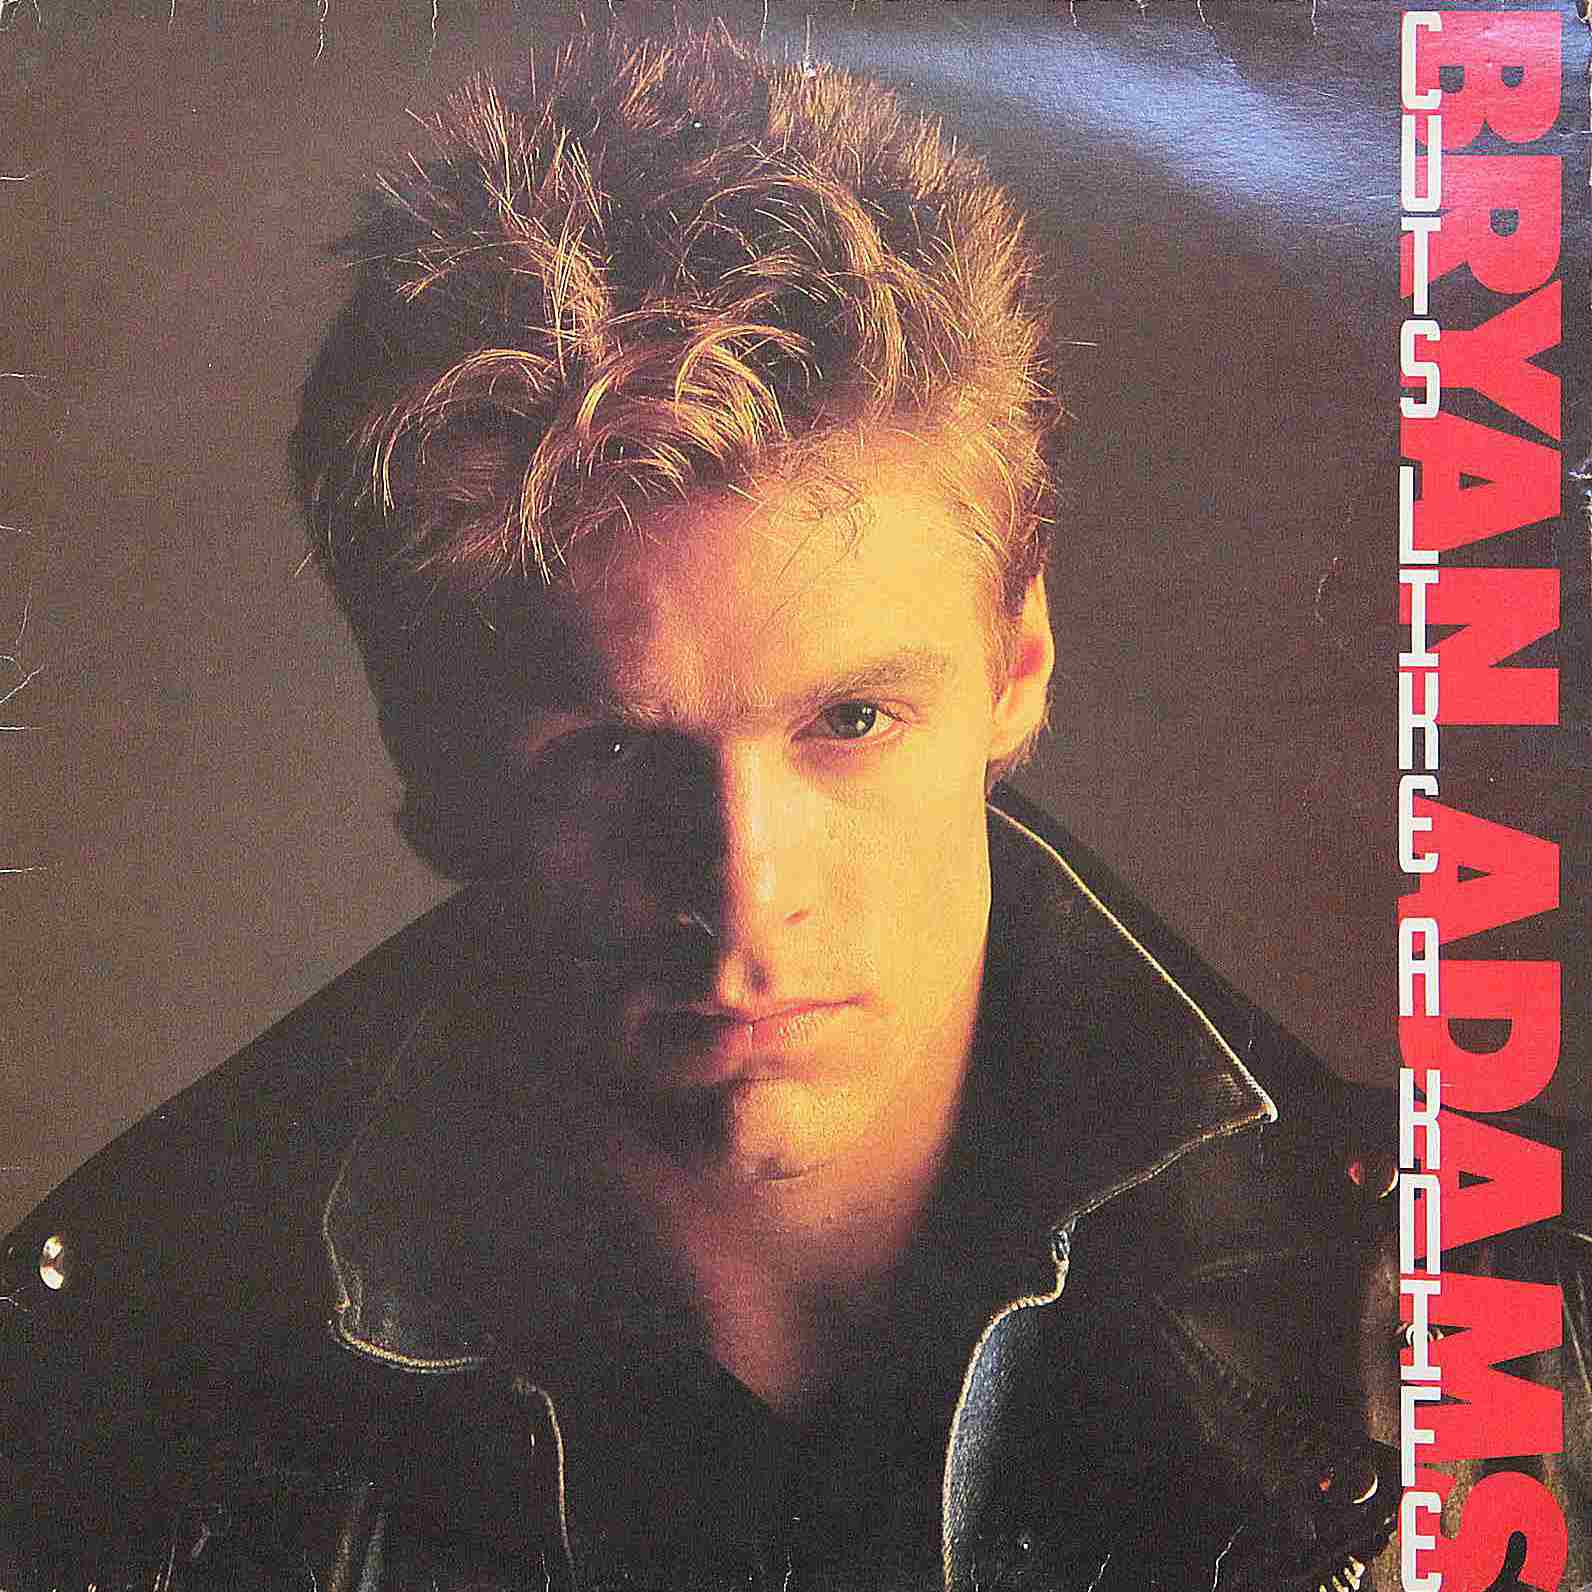 The title track from Bryan Adams' debut 1983 LP became an '80s guitar rock classic.